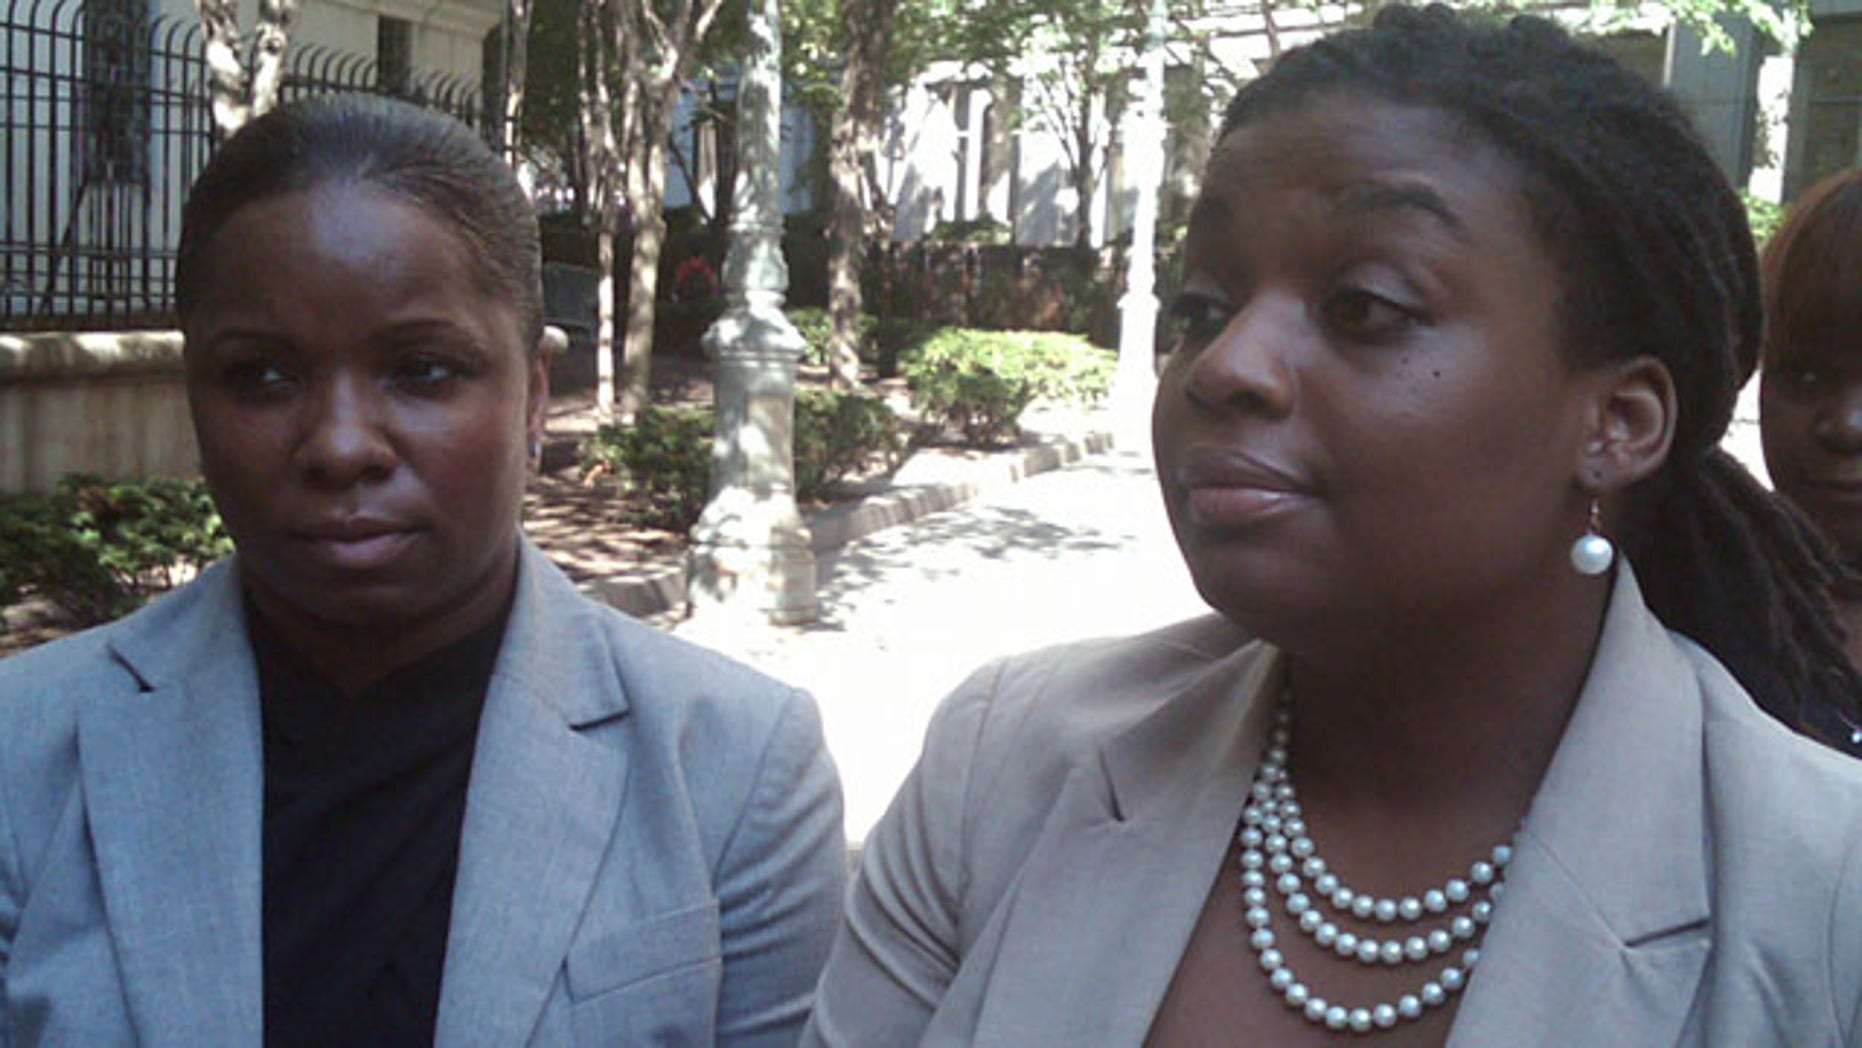 September 3, 2013: Brandi Johnson, left, and her lawyer, Marjorie M. Sharpe, leave federal court in New York after a civil jury awarded $30,000 in punitive damages in addition to the $250,000 in compensatory damages that had been awarded last week. The jury said STRIVE East Harlem, a nonprofit employment organization, must pay $5,000 while one of its founders, Rob Carmona, owes $25,000 in punitive damages after an audio-tape played during a week-long trial showed he launched an N-word laced tirade against Johnson while she worked at STRIVE last year. (AP Photo)